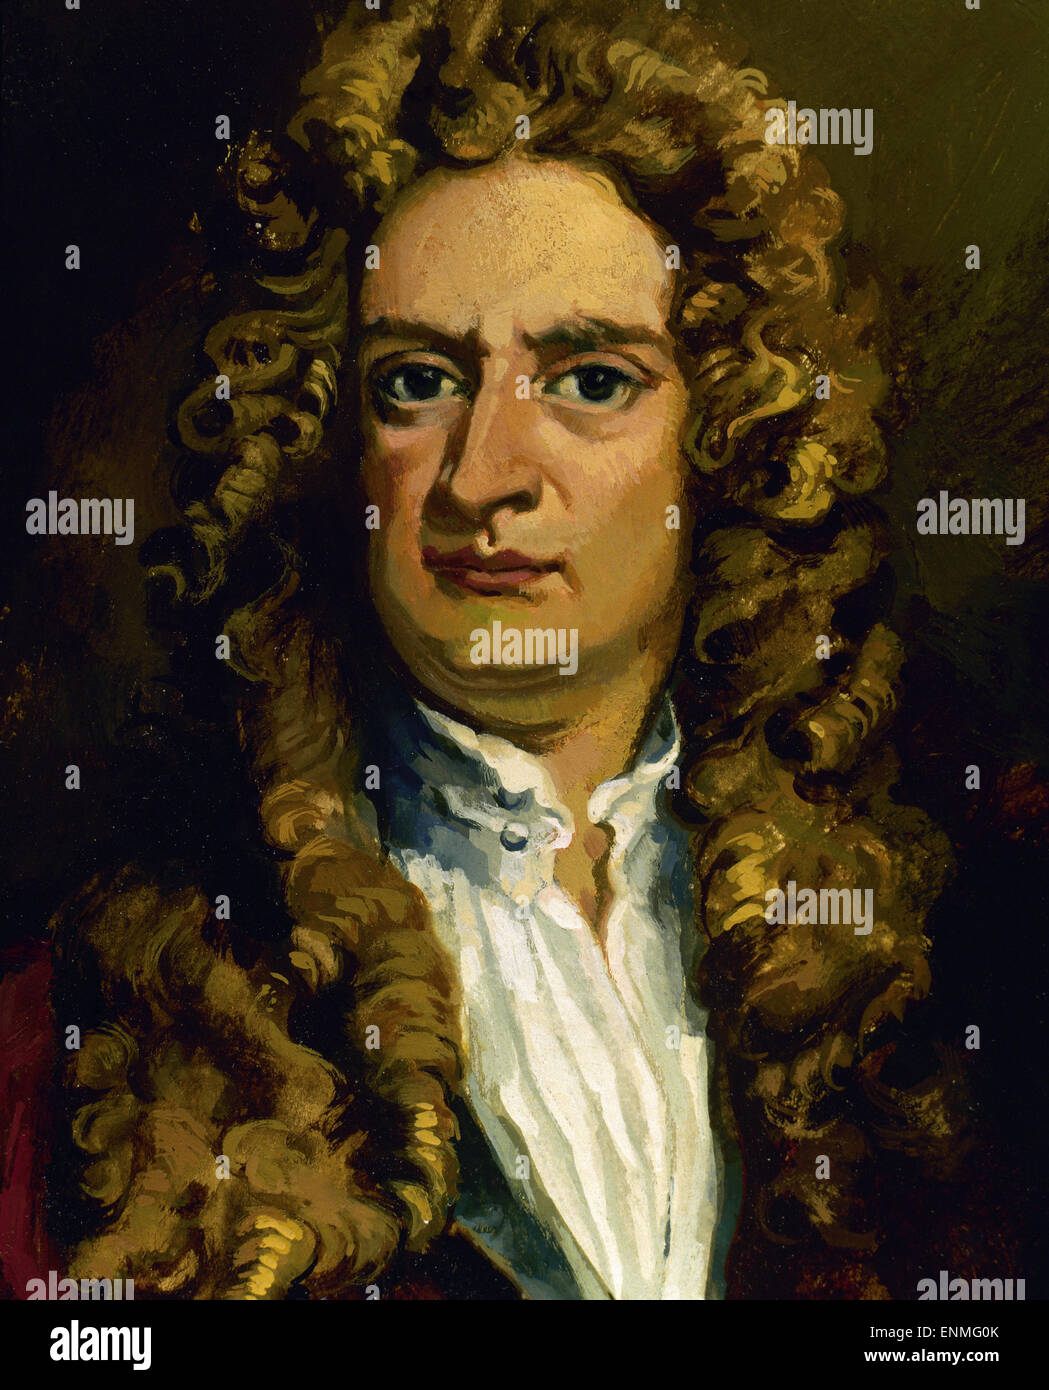 Isaac Newton (1642-1726). English physicist and mathematician. Portrait. Color. - Stock Image